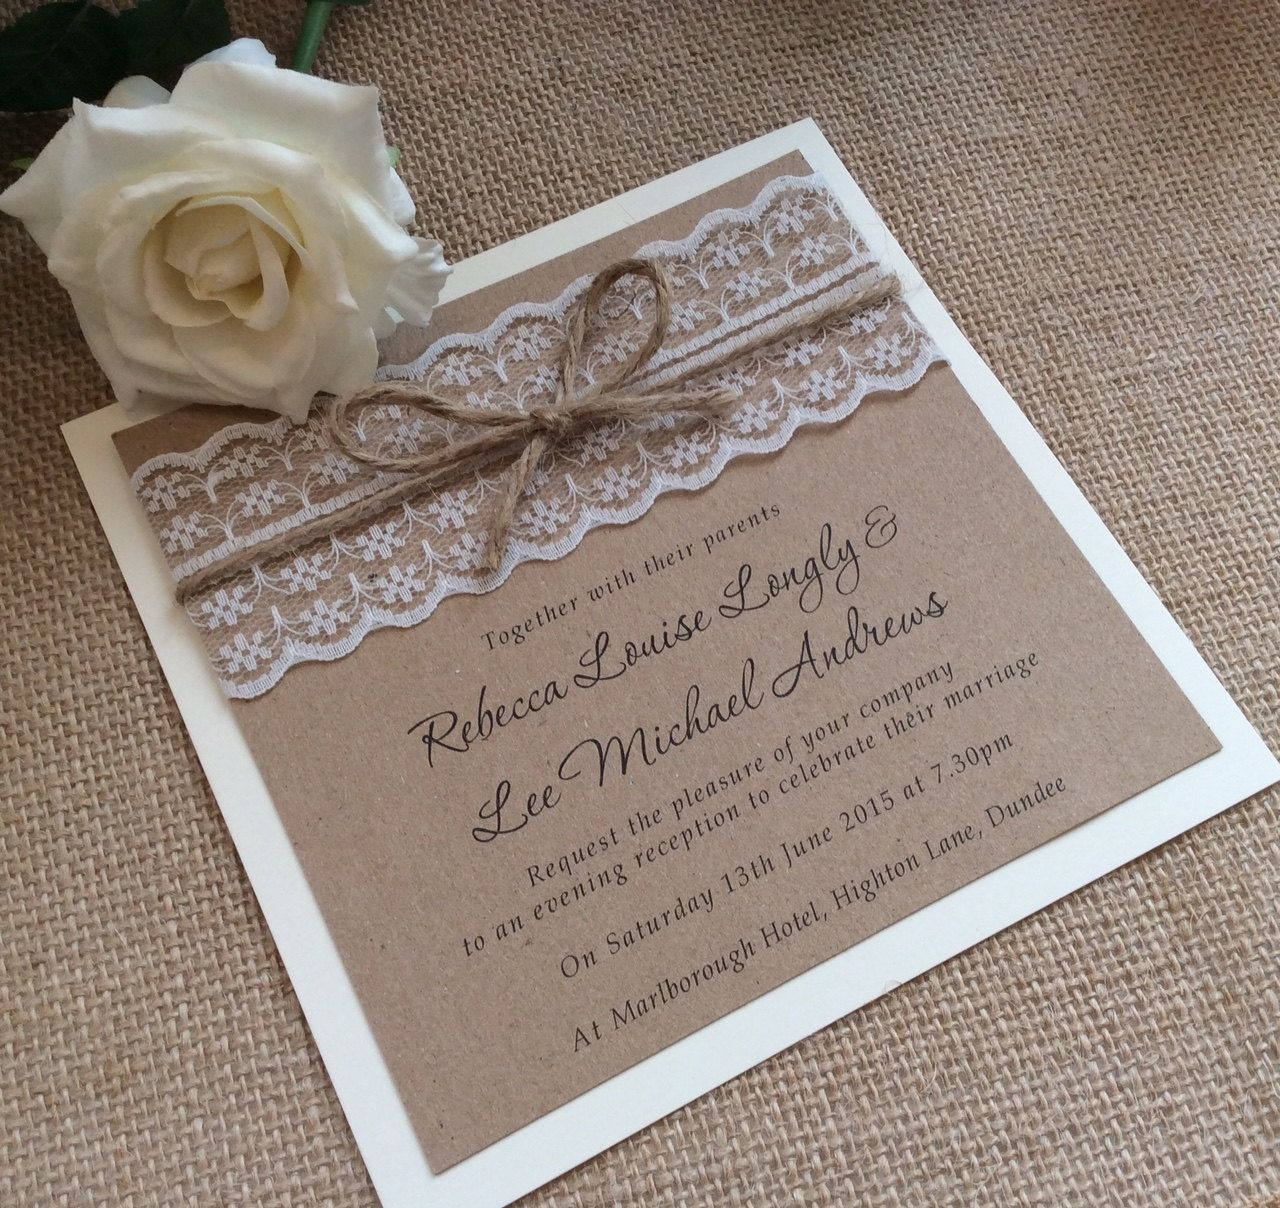 Wedding Lace Invitations: Vintage/Rustic Lace Wedding Invitation With By